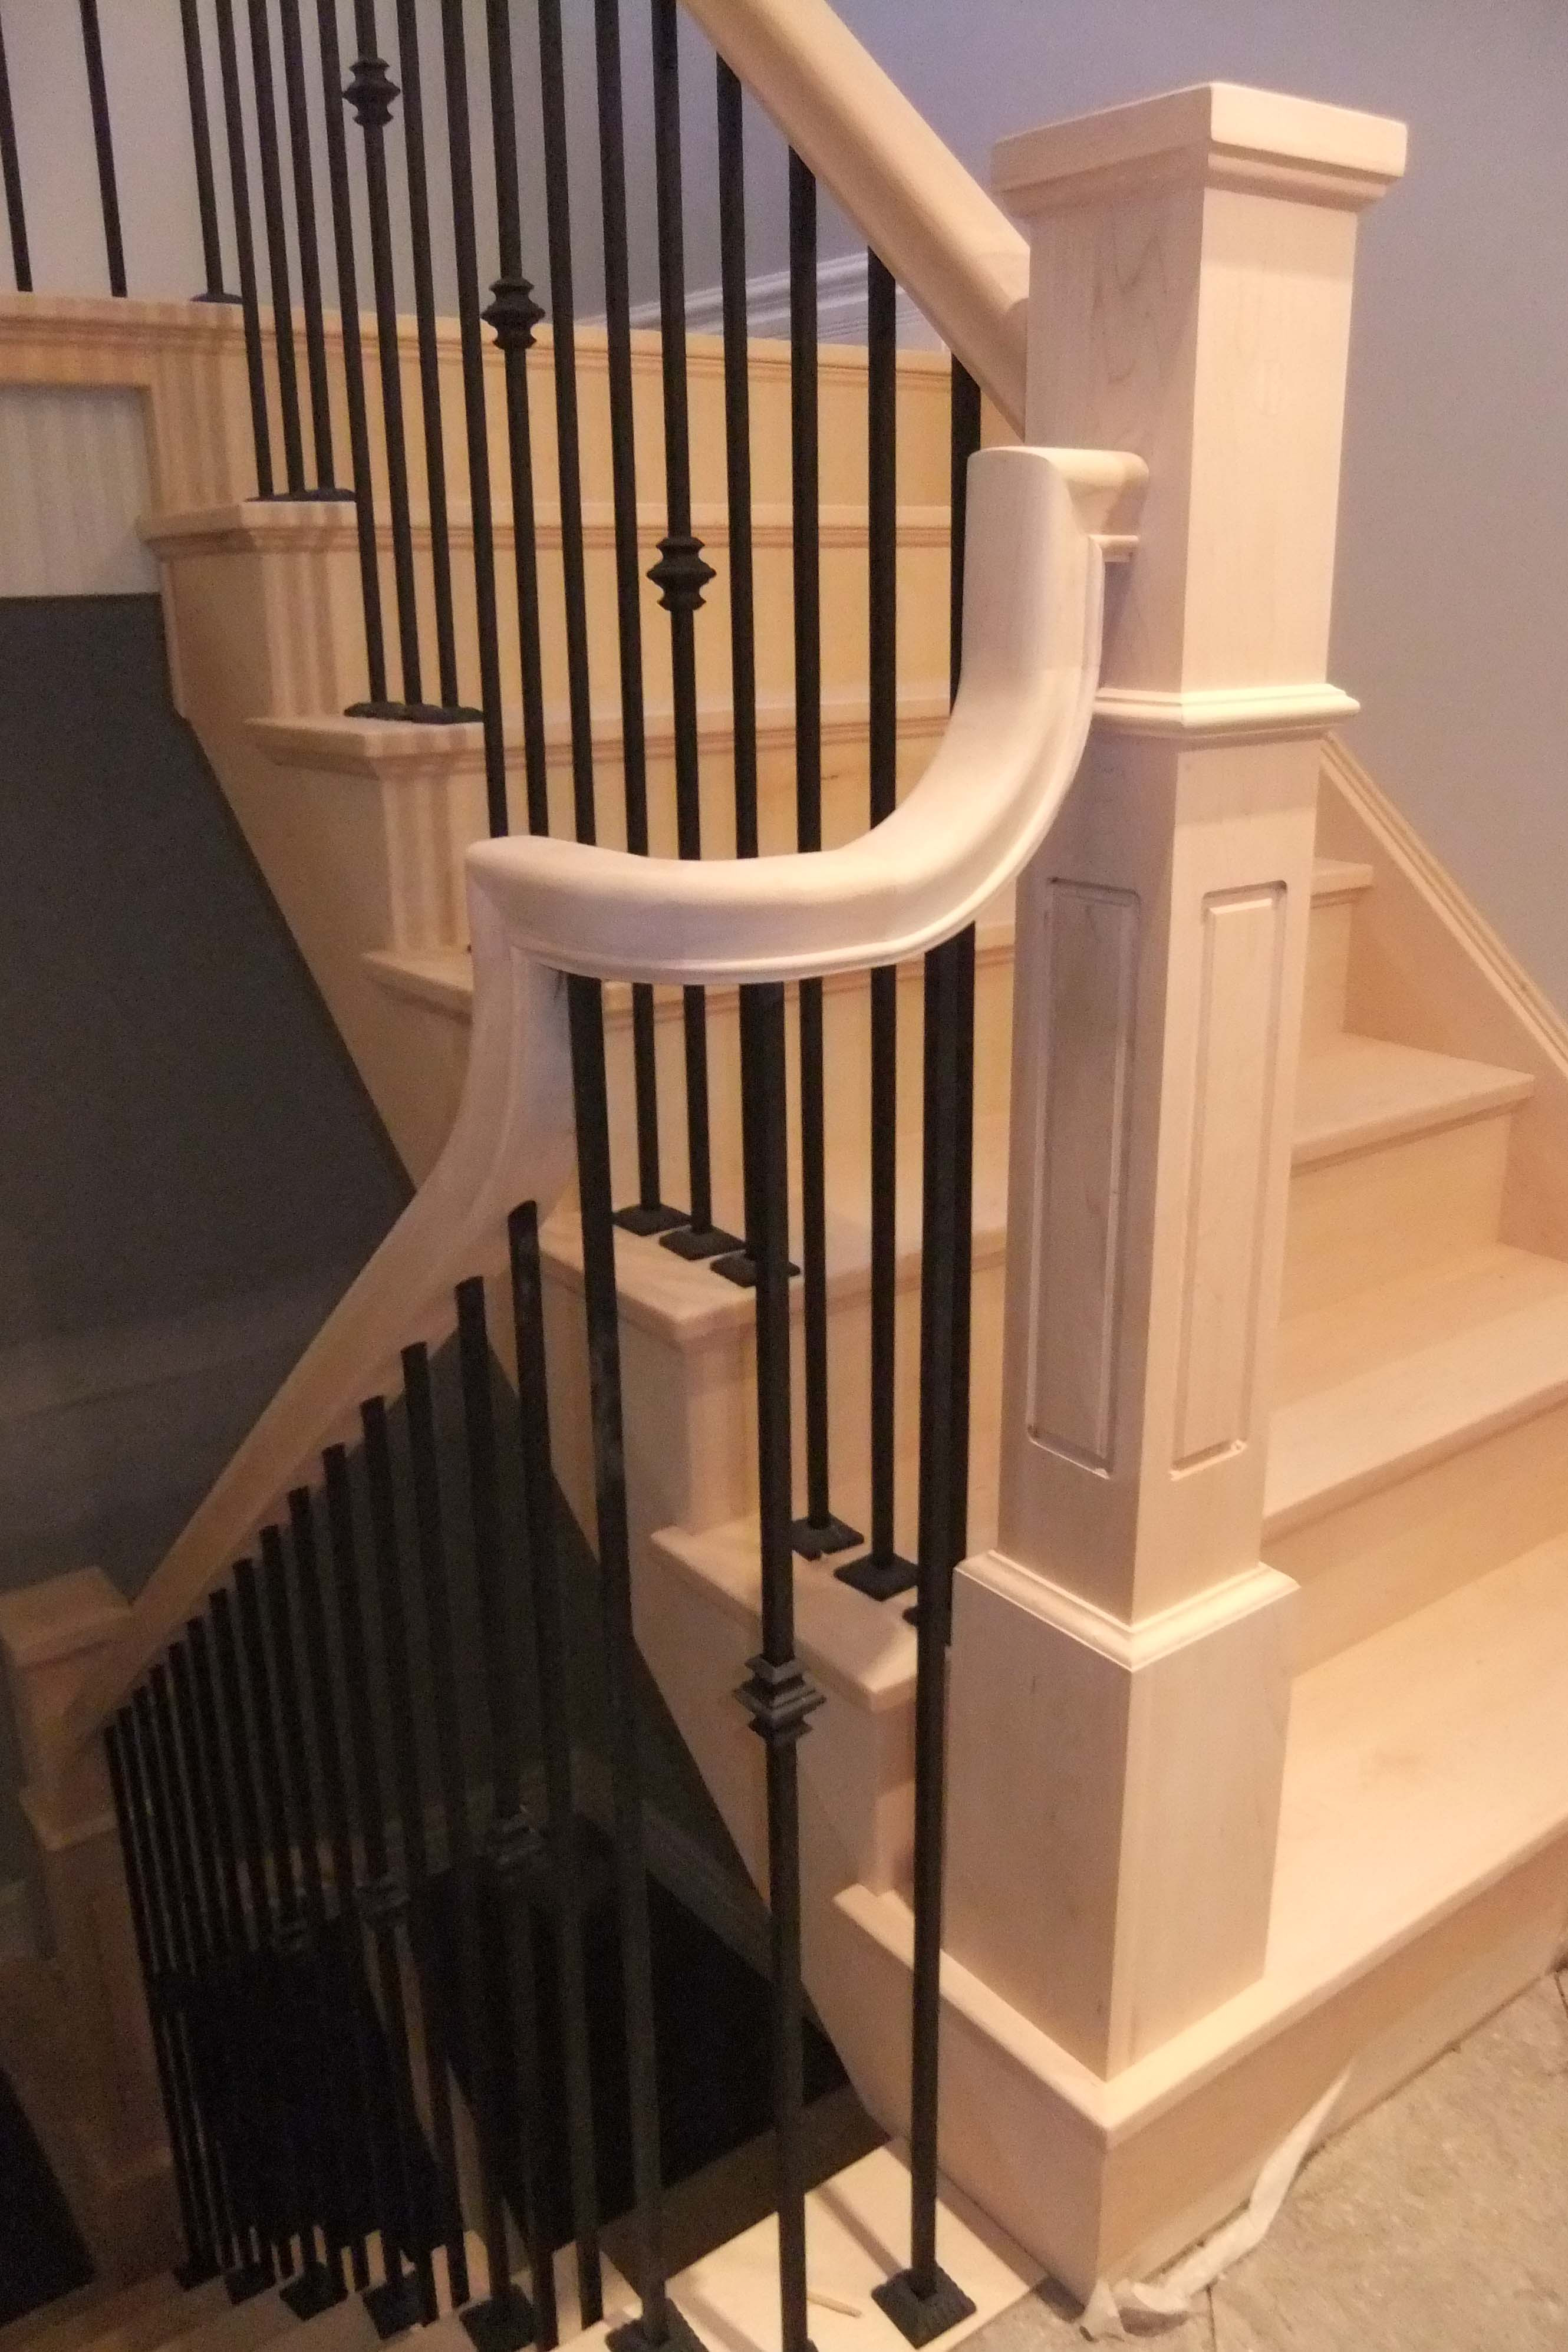 Best ideas about Staircase Railing Code . Save or Pin The Building Code's Impact on the Design of Your Handrail Now.